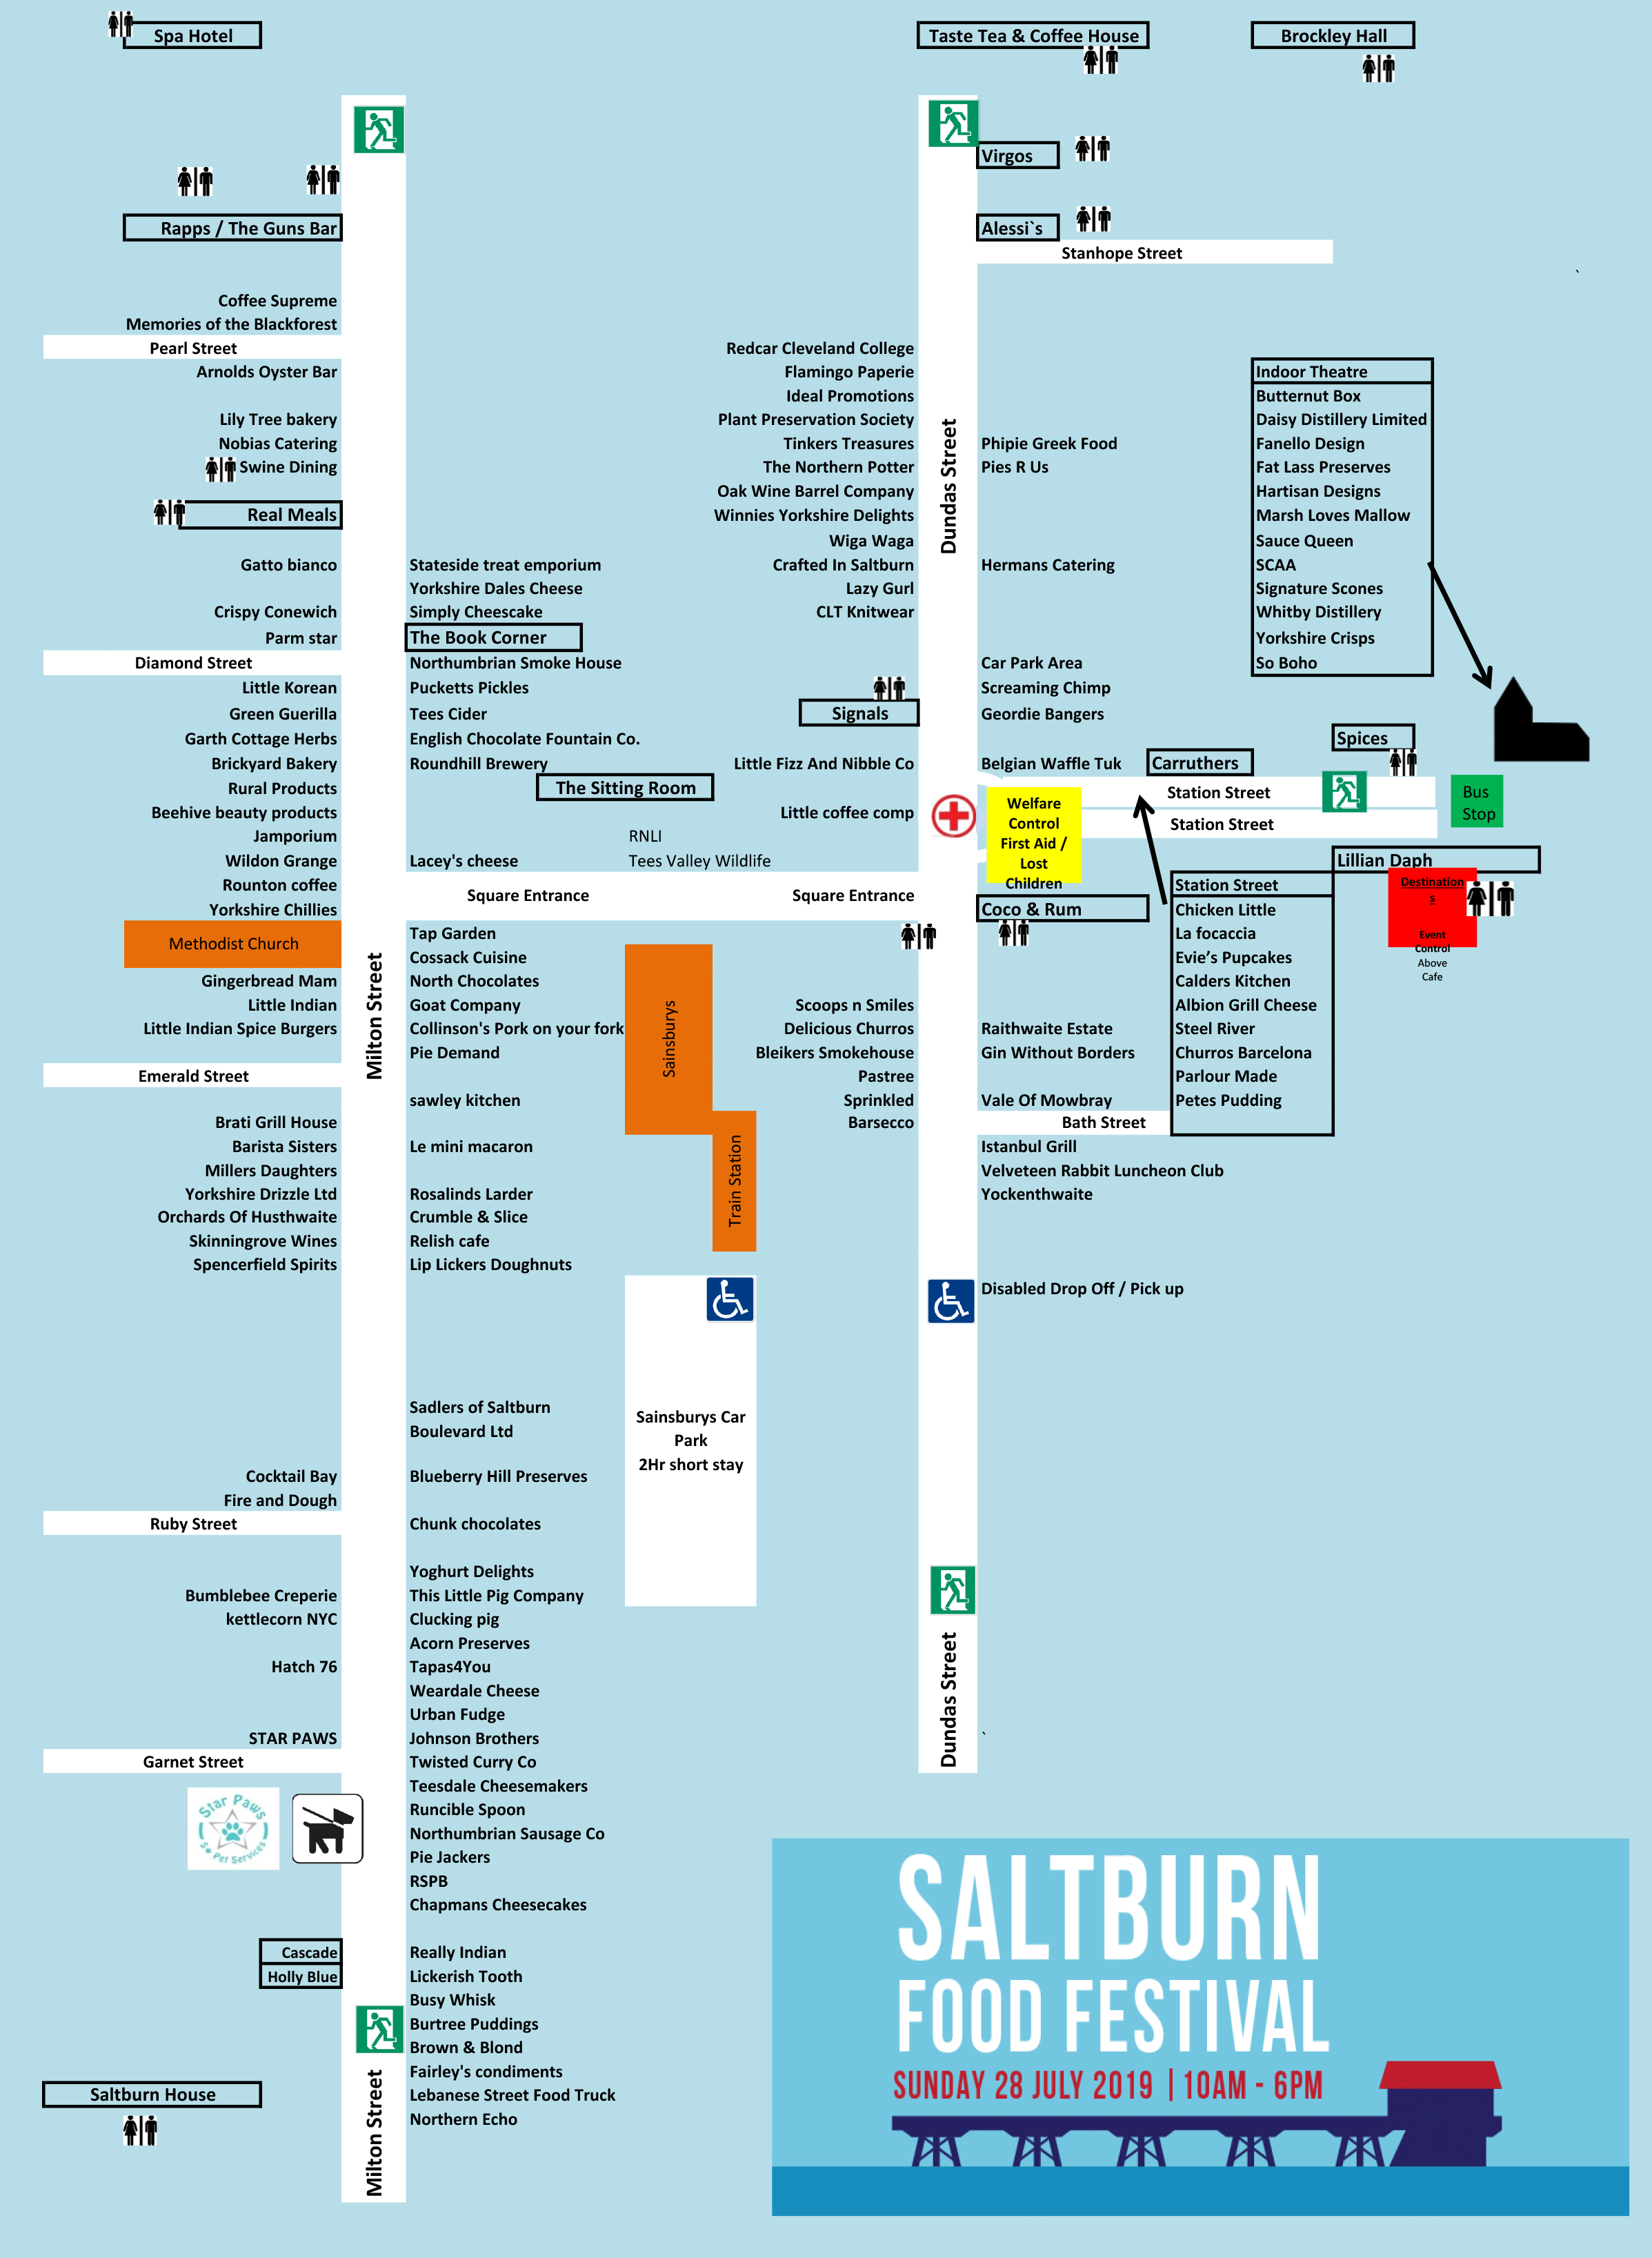 Saltburn Food Festival 2018 Map